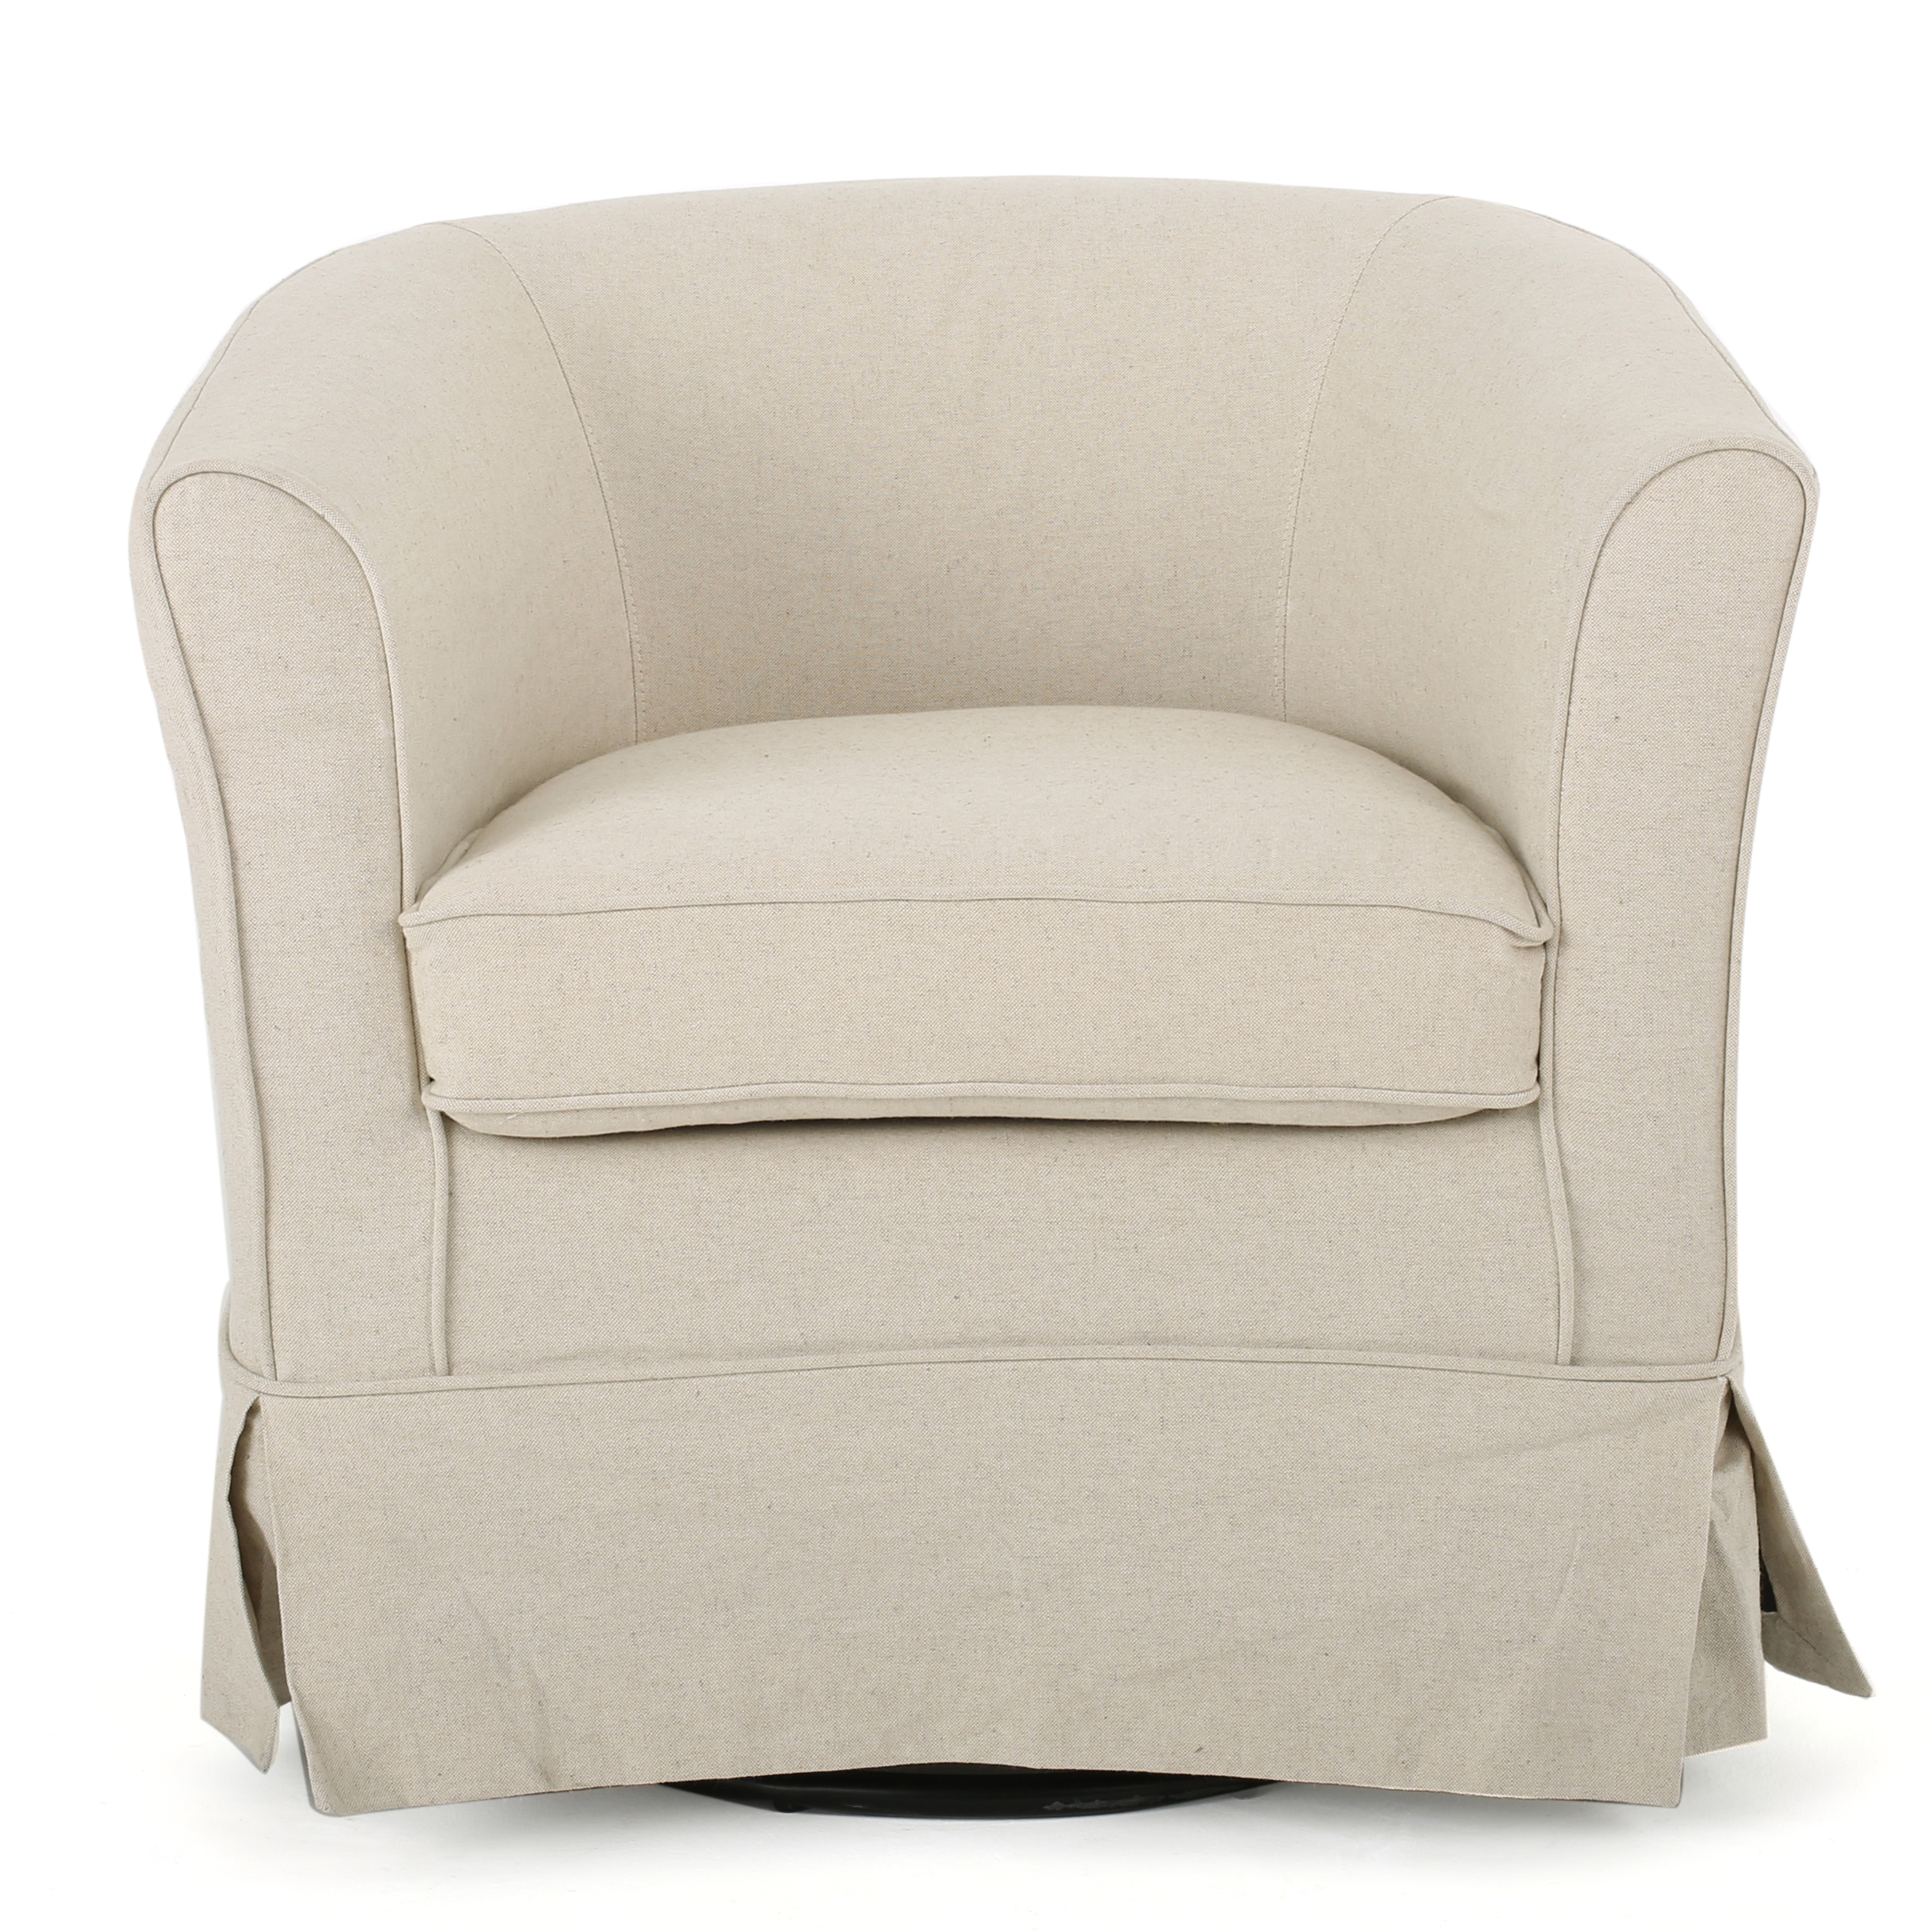 Esclaire Fabric Swivel Chair with Loose Cover, Natural